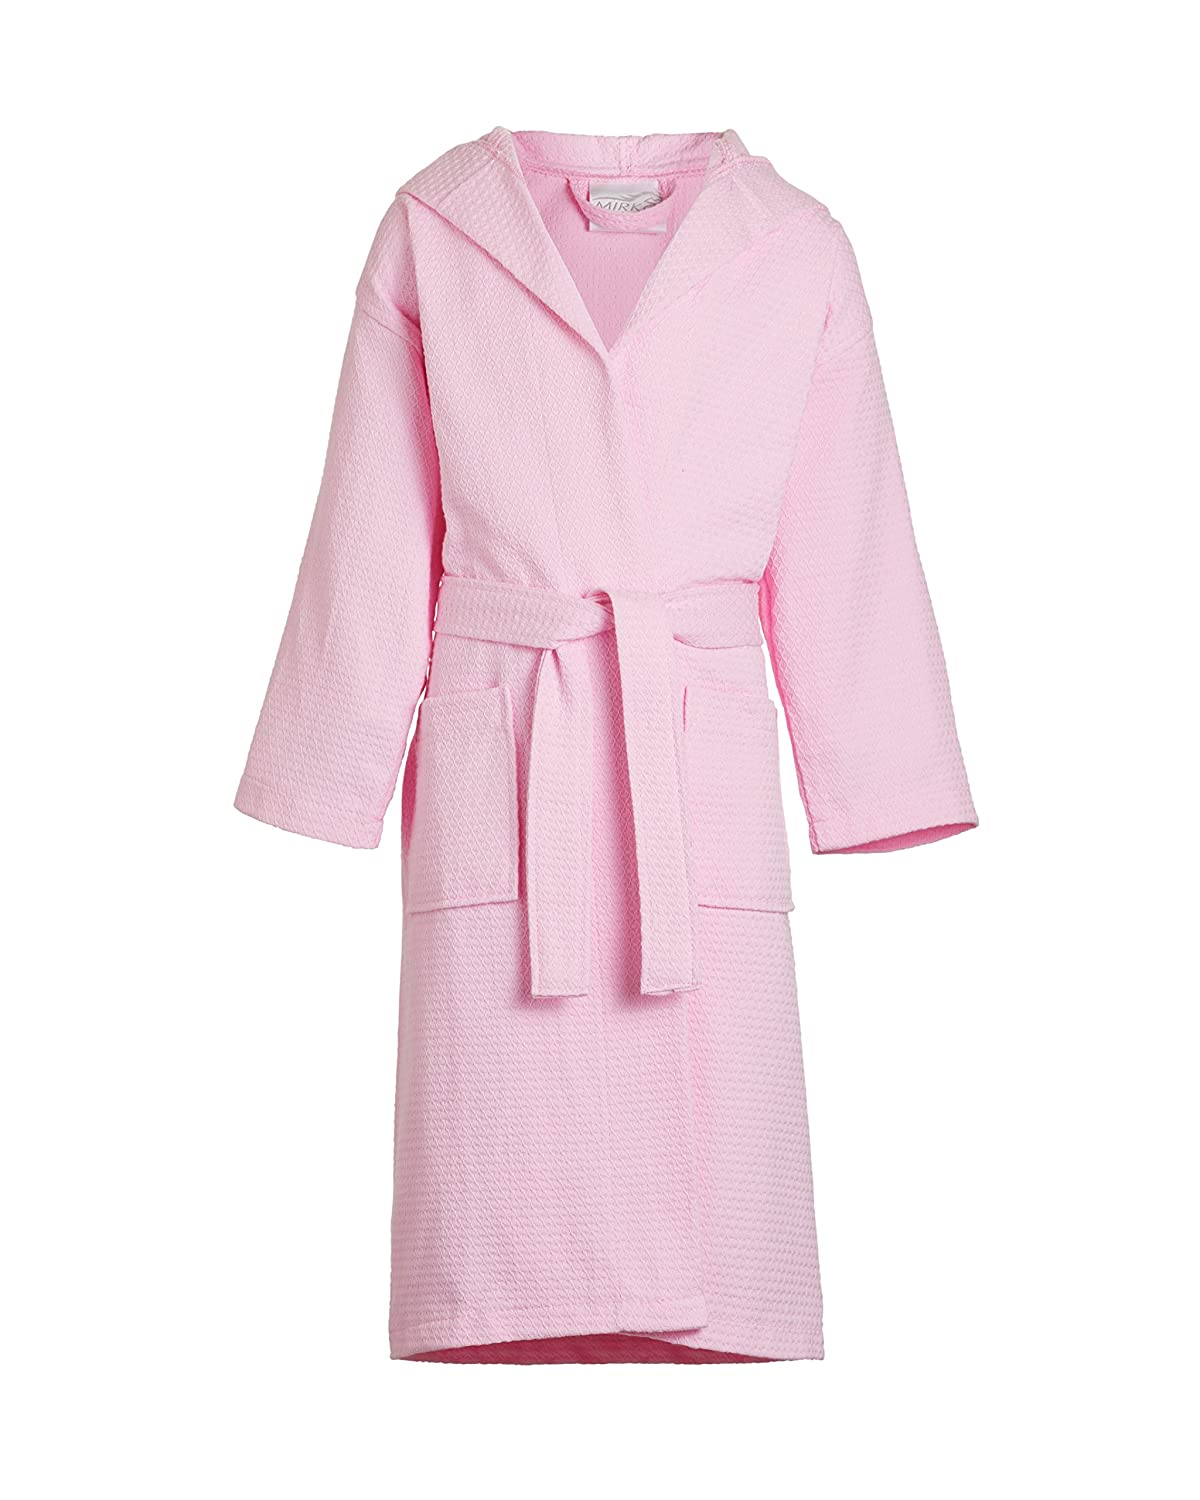 1d2118745c Amazon.com  TowelBathrobe Kids Waffle Diamond Weave Hooded Bathrobe  Cheap  Pink Bathrobes  Clothing